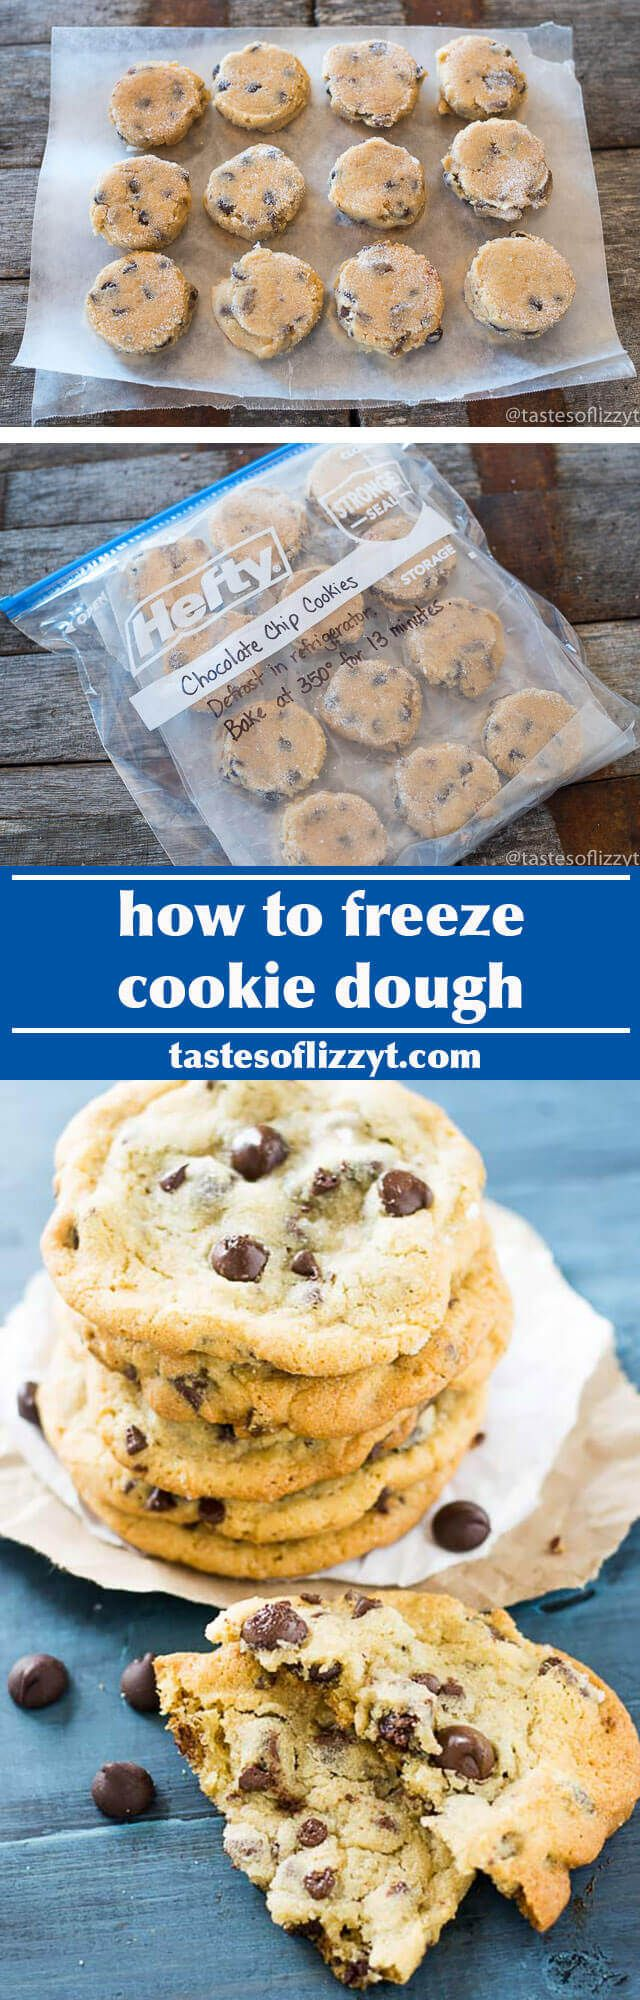 Your complete guide on how to freeze cookie dough. Our best cookie recipes to freeze, plus tips and techniques for quick, easy, cookie baking.